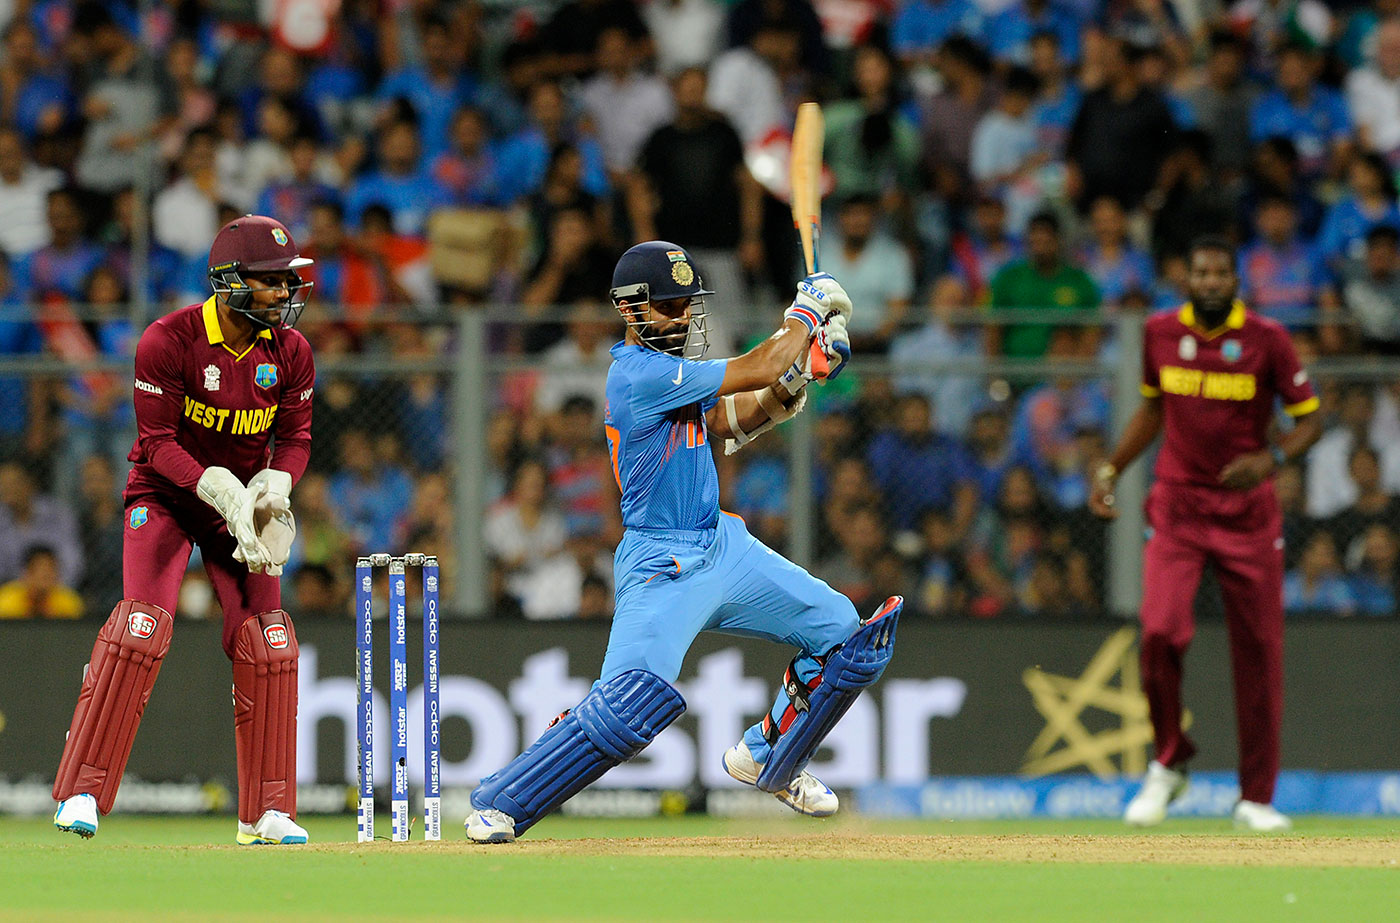 In the 2016 World T20 semi-final, Ajinkya Rahane followed the brief given to him of anchoring the innings, but his 40-ball 35 eventually cost India the game